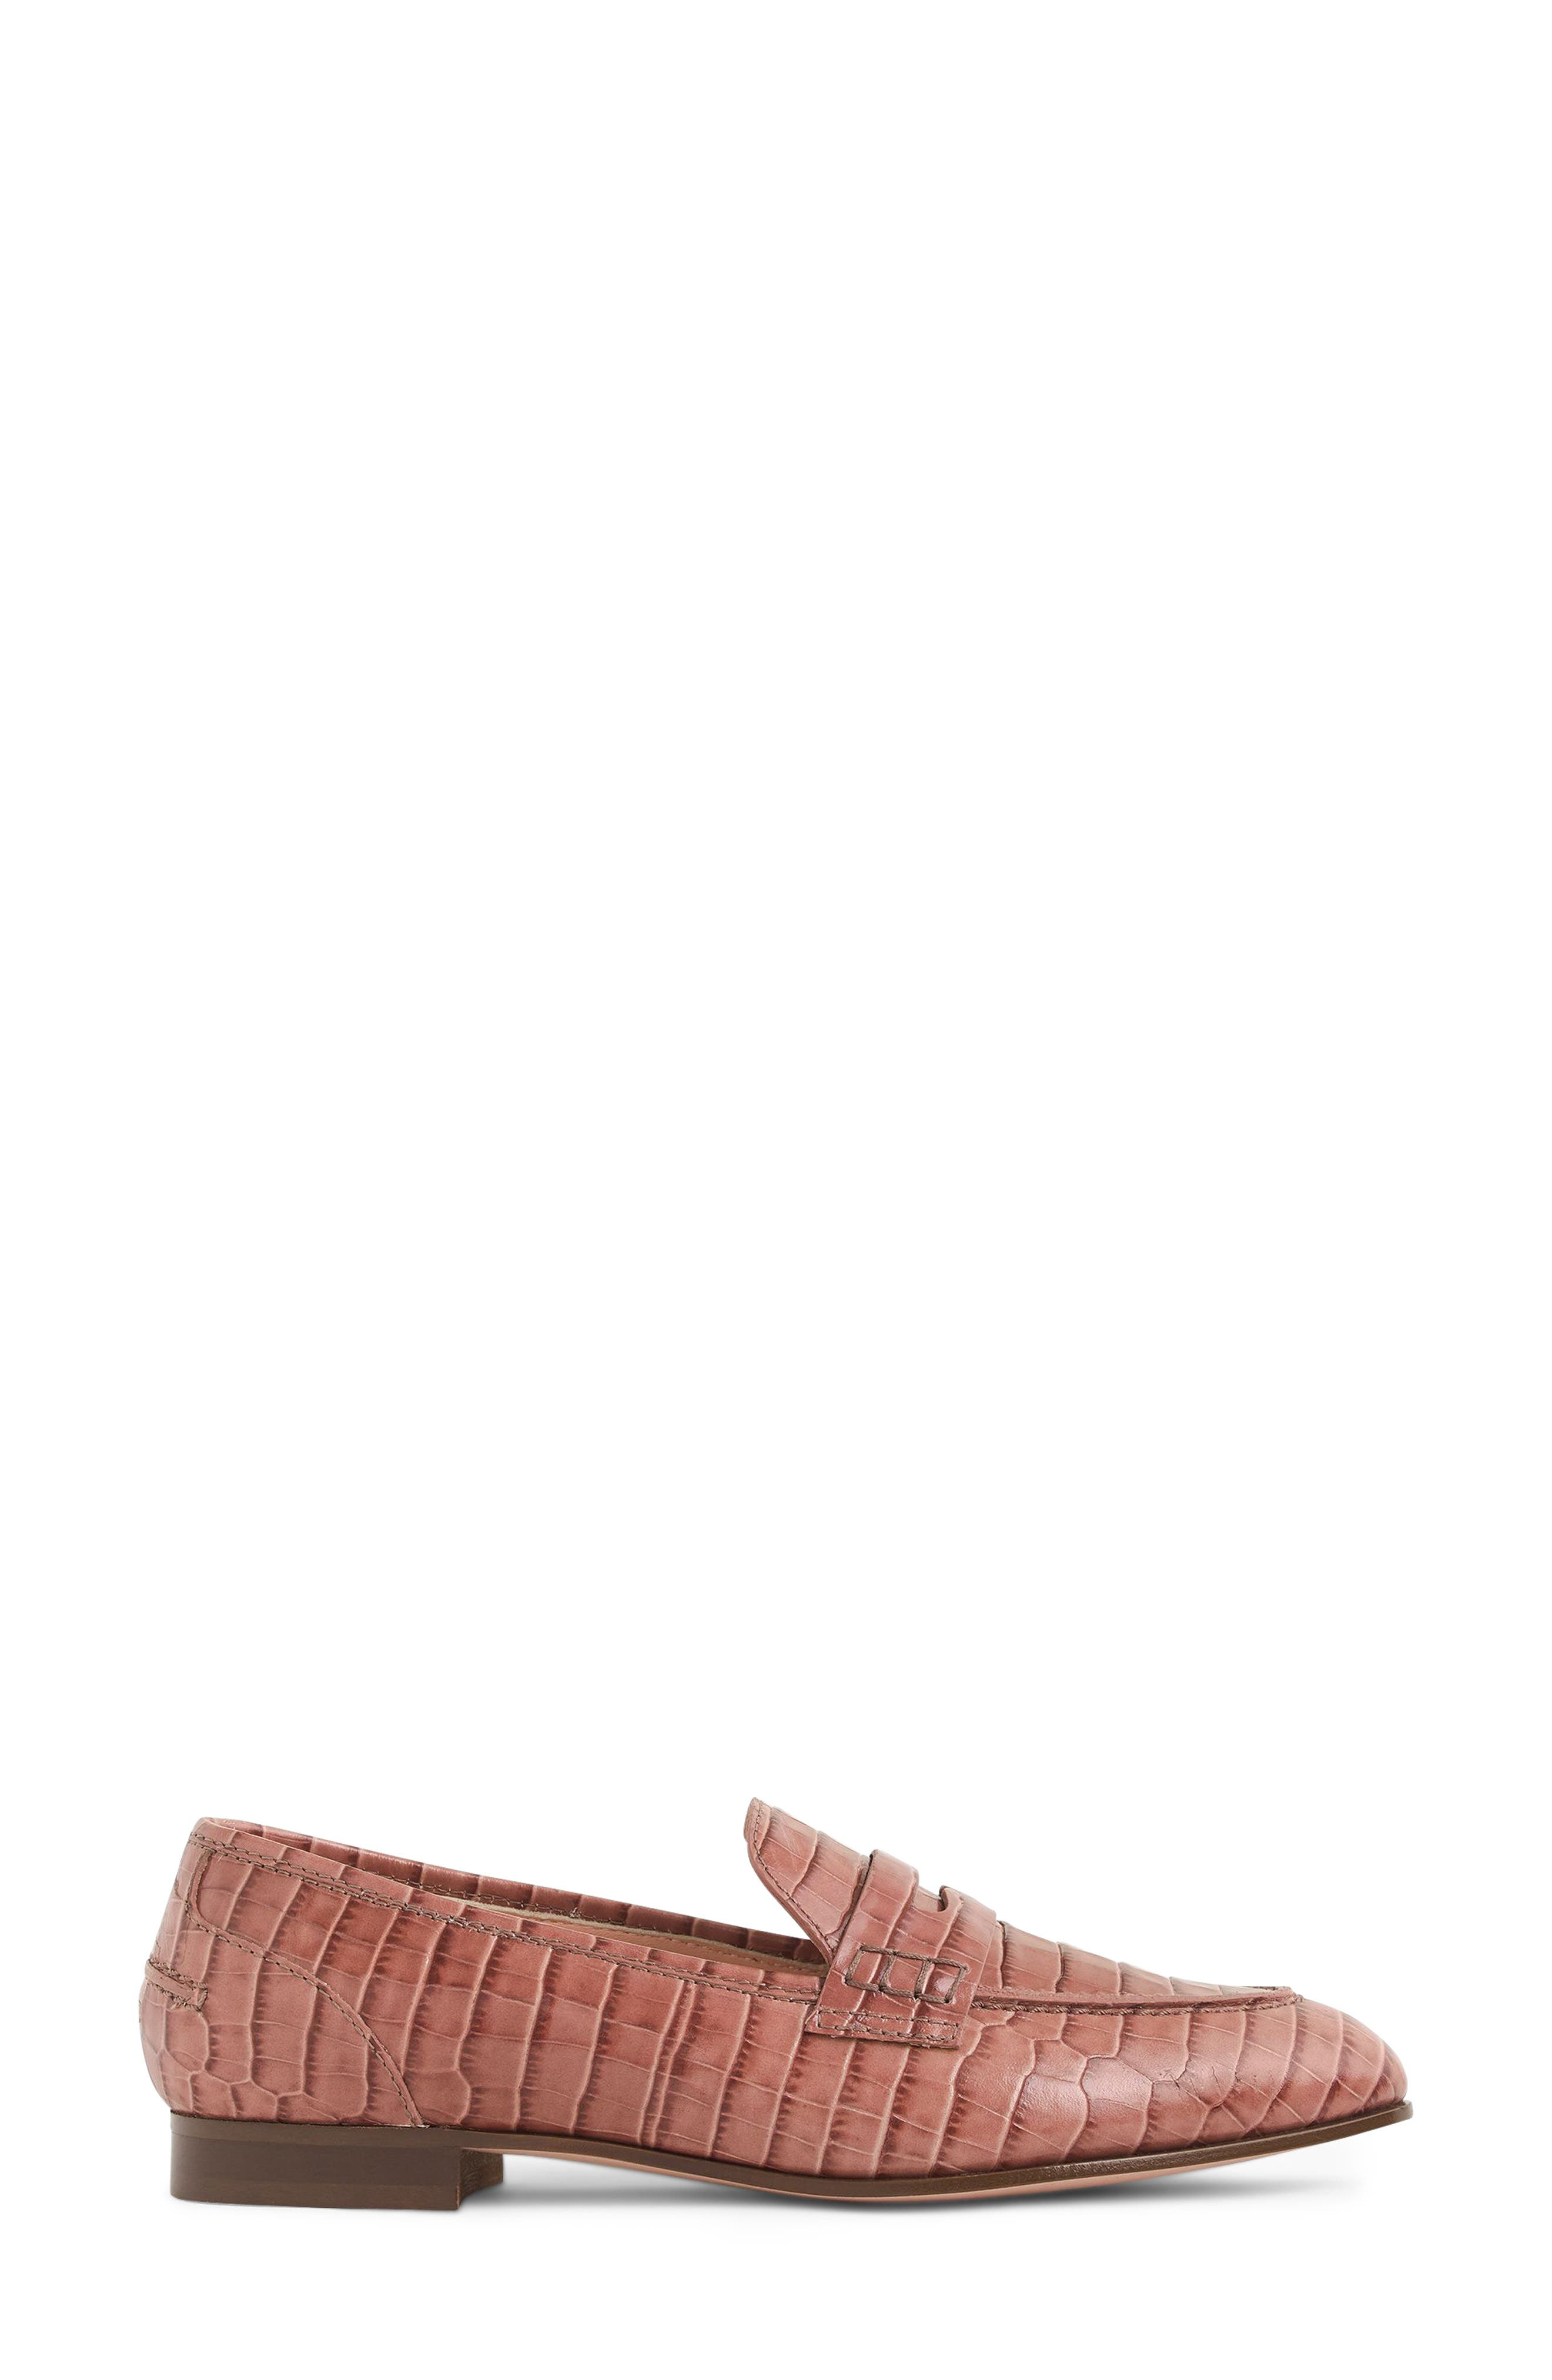 Academy Penny Loafer,                             Alternate thumbnail 2, color,                             JASMINE FROST